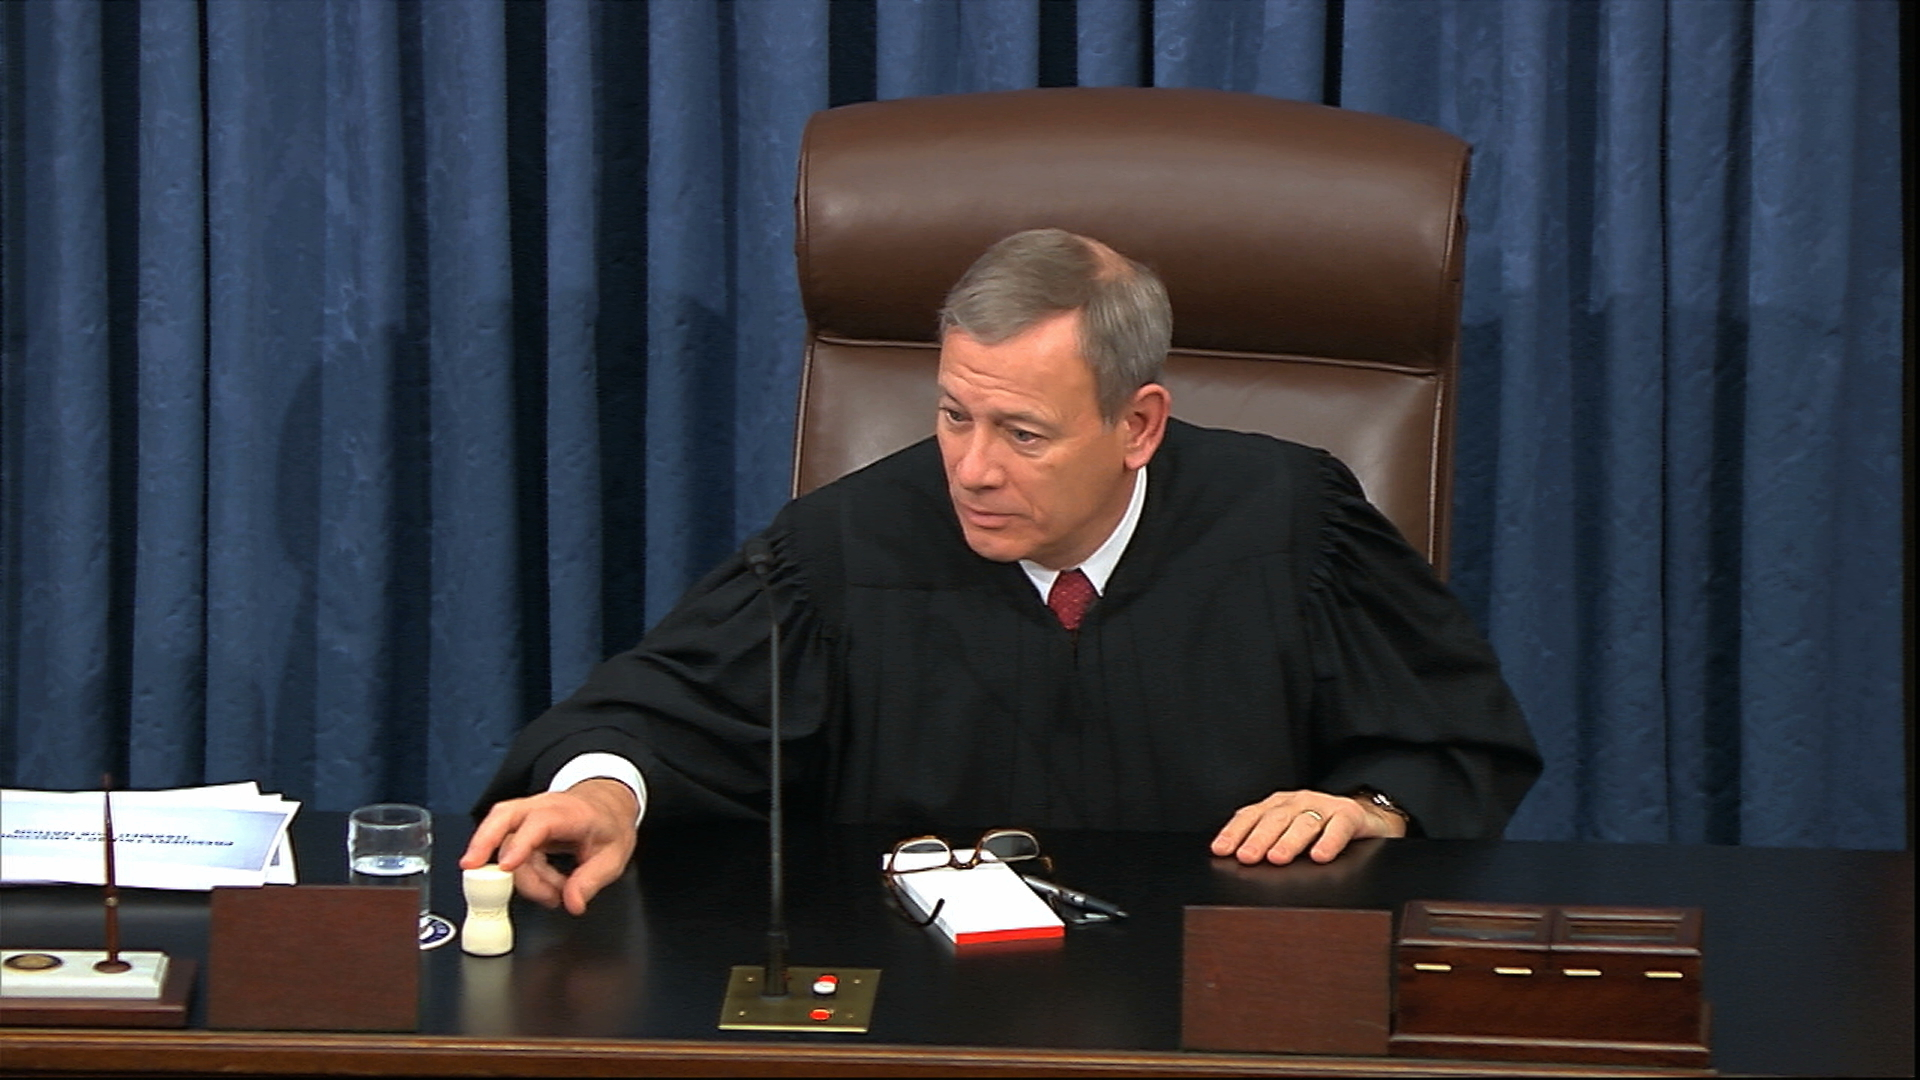 As chief justice of the U.S. Supreme Court, John Roberts presides at the impeachment trial of President Donald Trump.